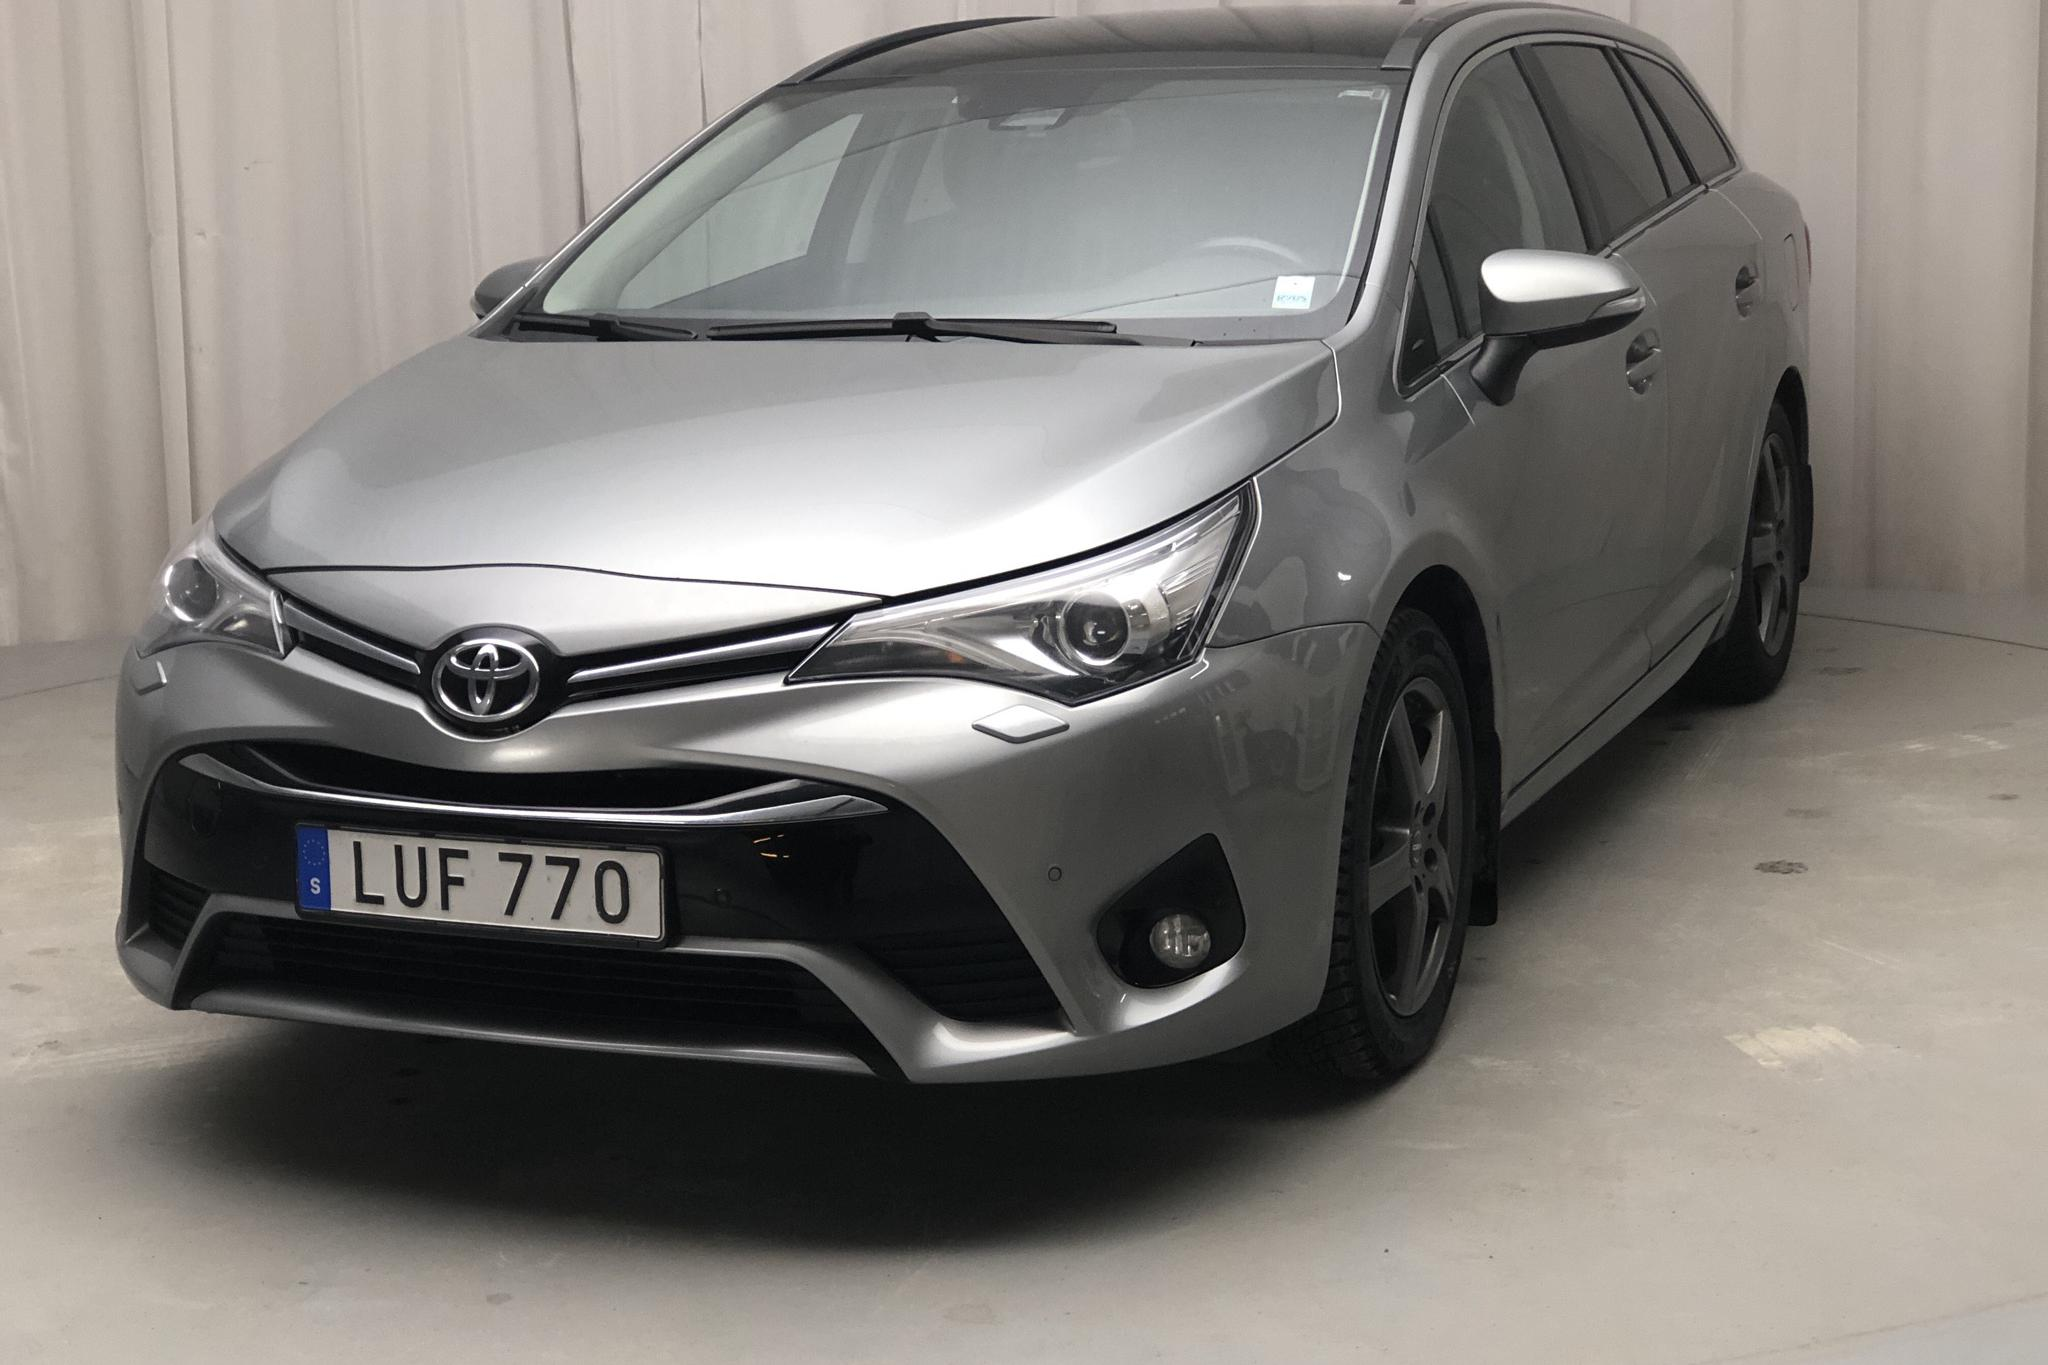 Toyota Avensis 2.0 D-4D Touring Sports (143hk) - 14 288 mil - Manuell - Light Grey - 2017